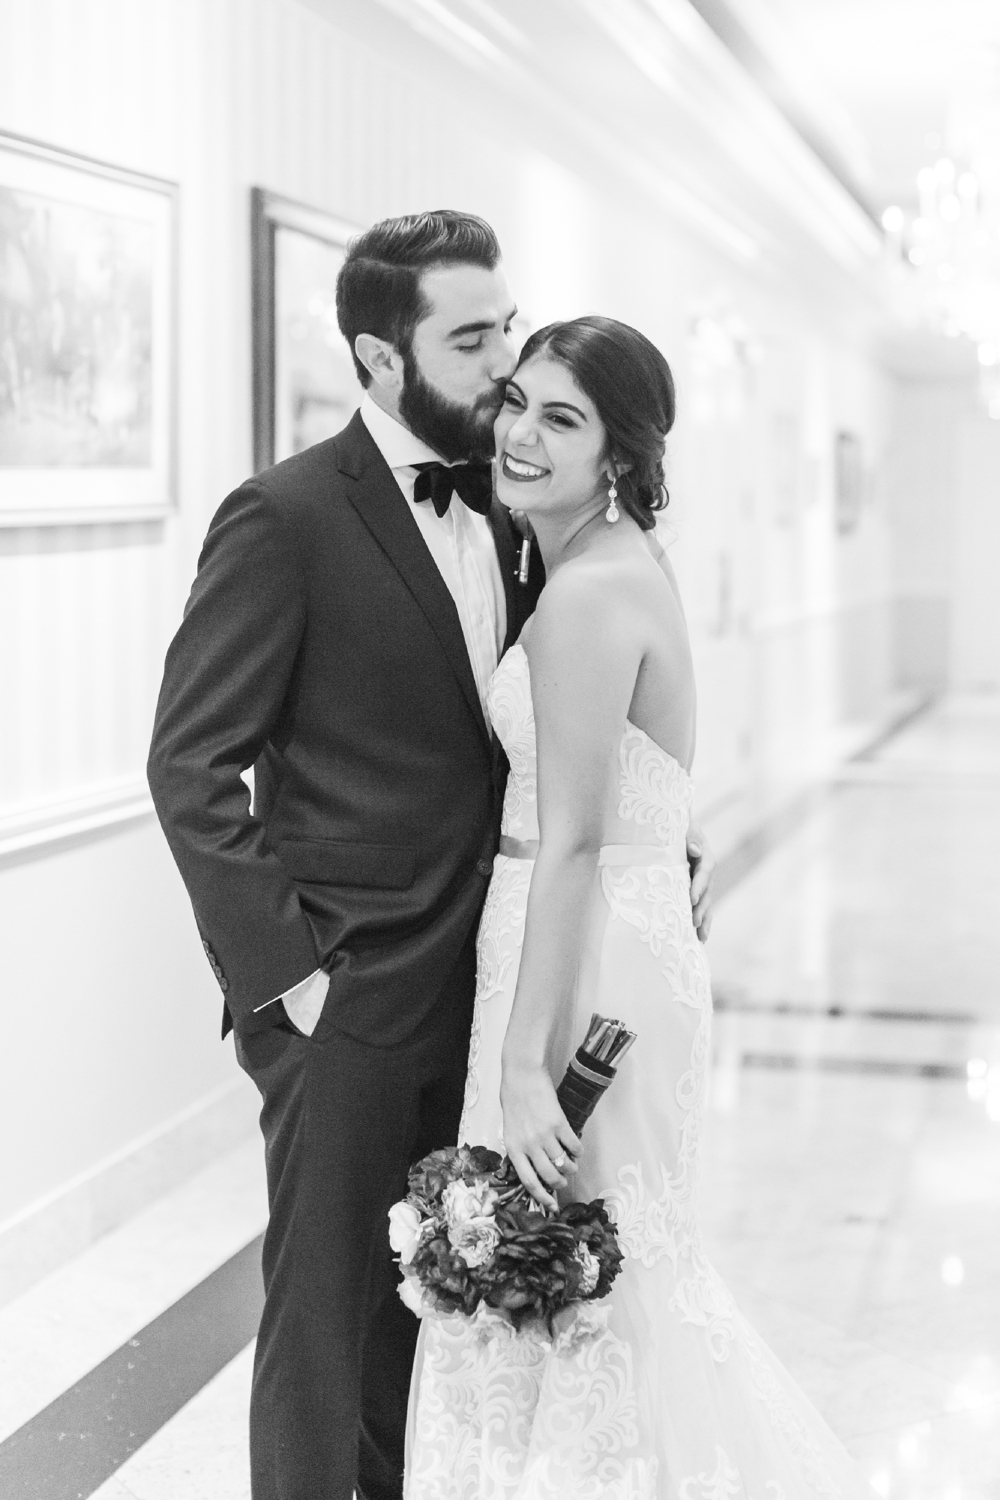 the-rockleigh-wedding-new-jersey-connecticut-photographer-shaina-lee-photography-photo